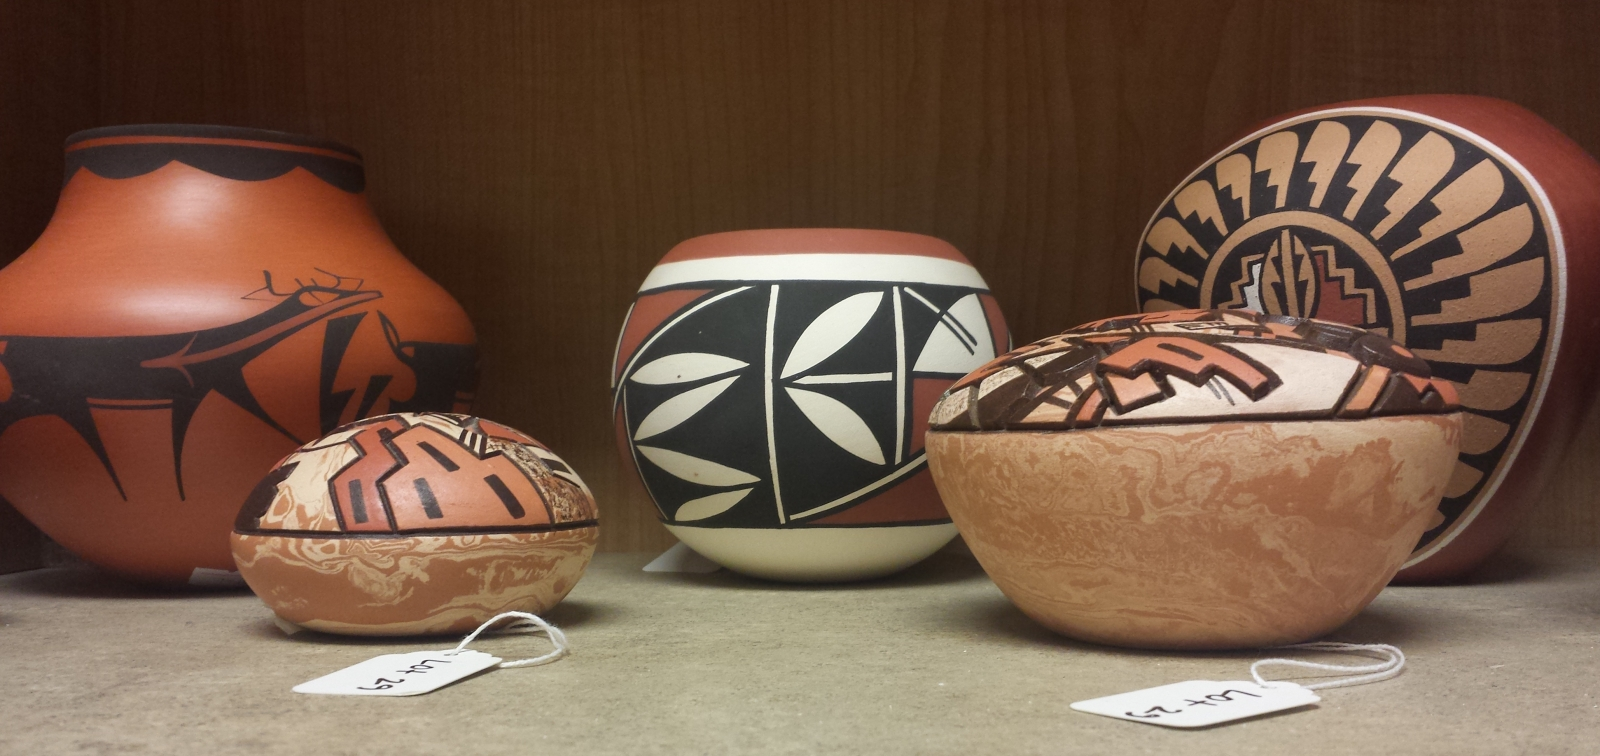 Some ceramics for sale at the June 23rd auction, Native American and Decorative Arts, put on by Revere Auctions. Photo by Lianna Matt